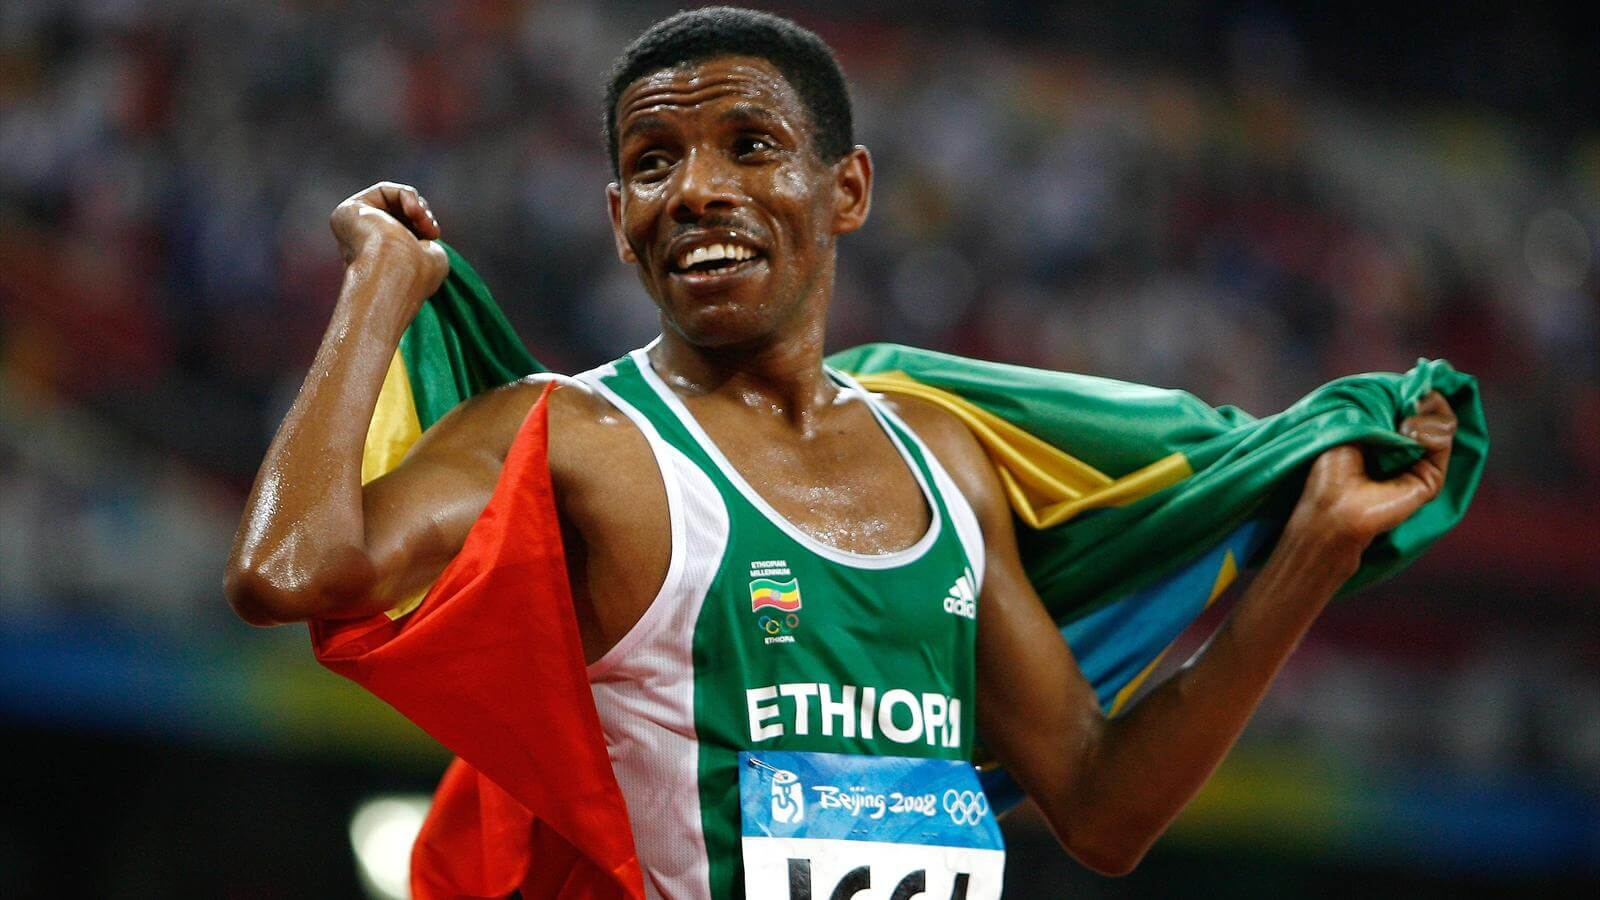 Hayle Gsilase - The Best Ethiopian Male Athlete of All Time